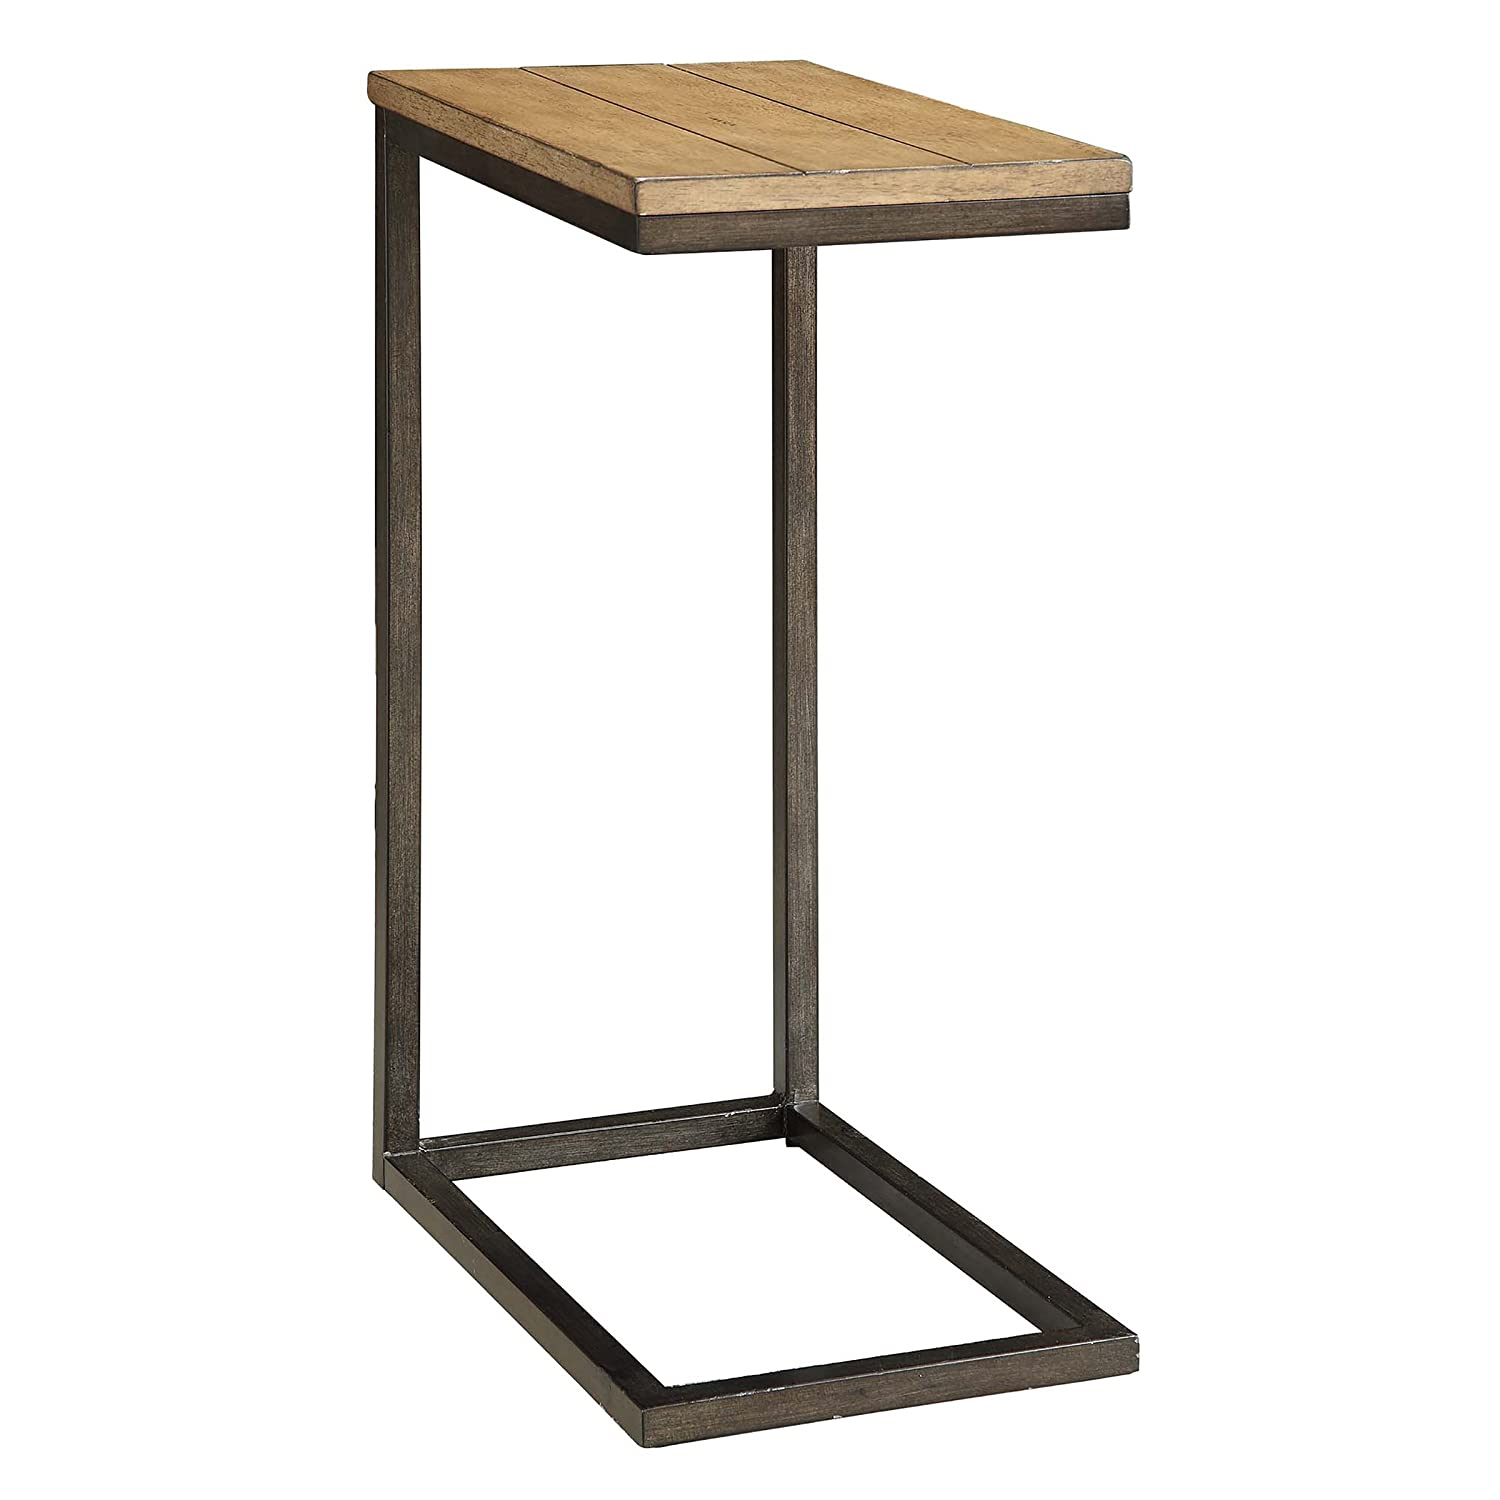 Carolina Chair and Table Ashley Computer Tray Table, Chestnut/Black